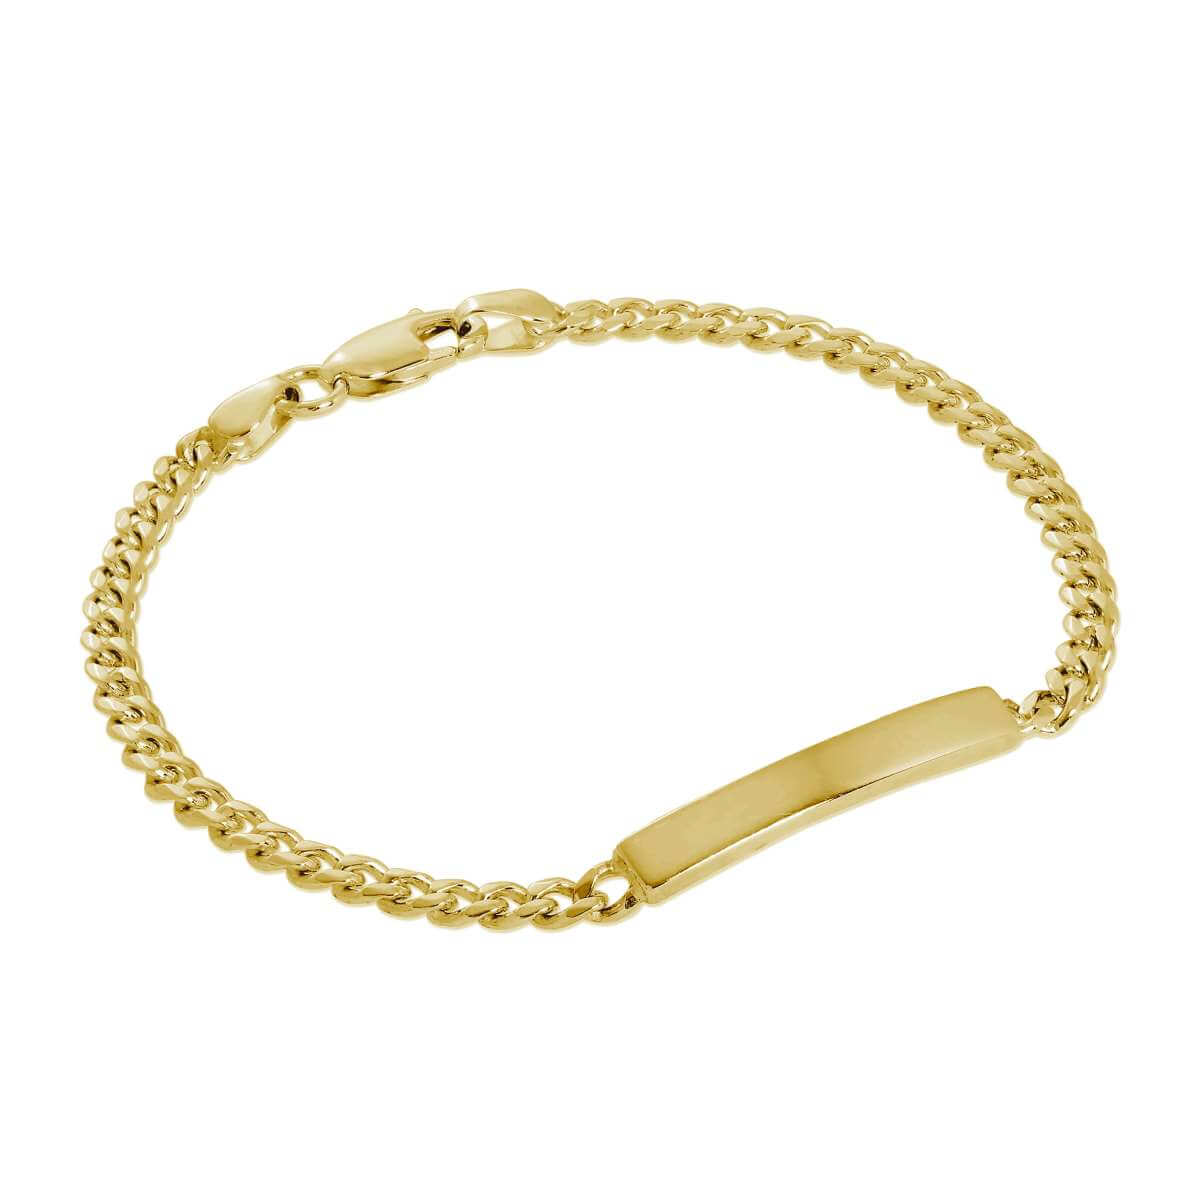 Gold Plated Sterling Silver 3mm Curb ID Bracelet 7 Inches